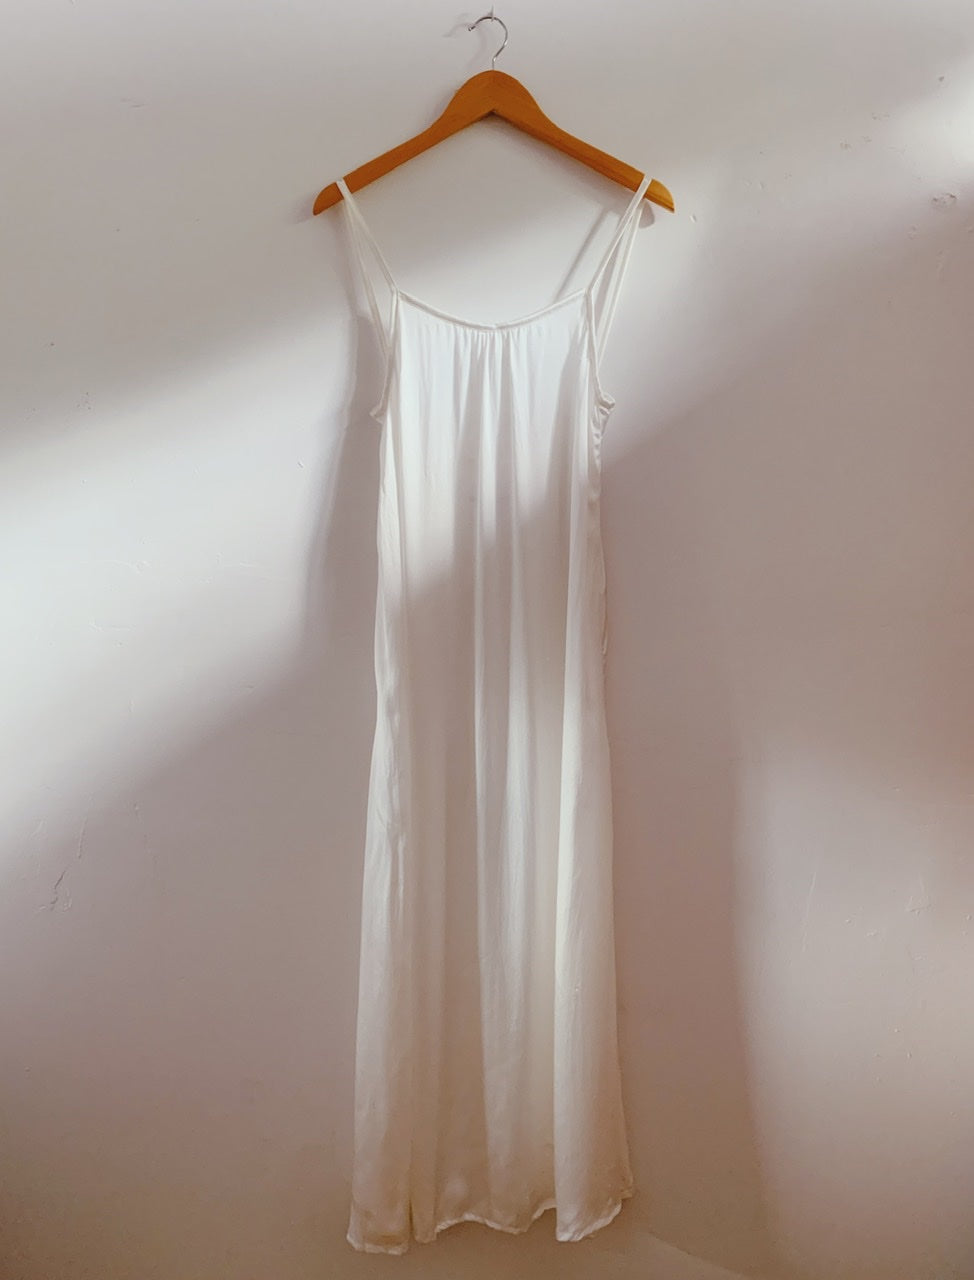 KAIONE SILK DRESS - White Sand